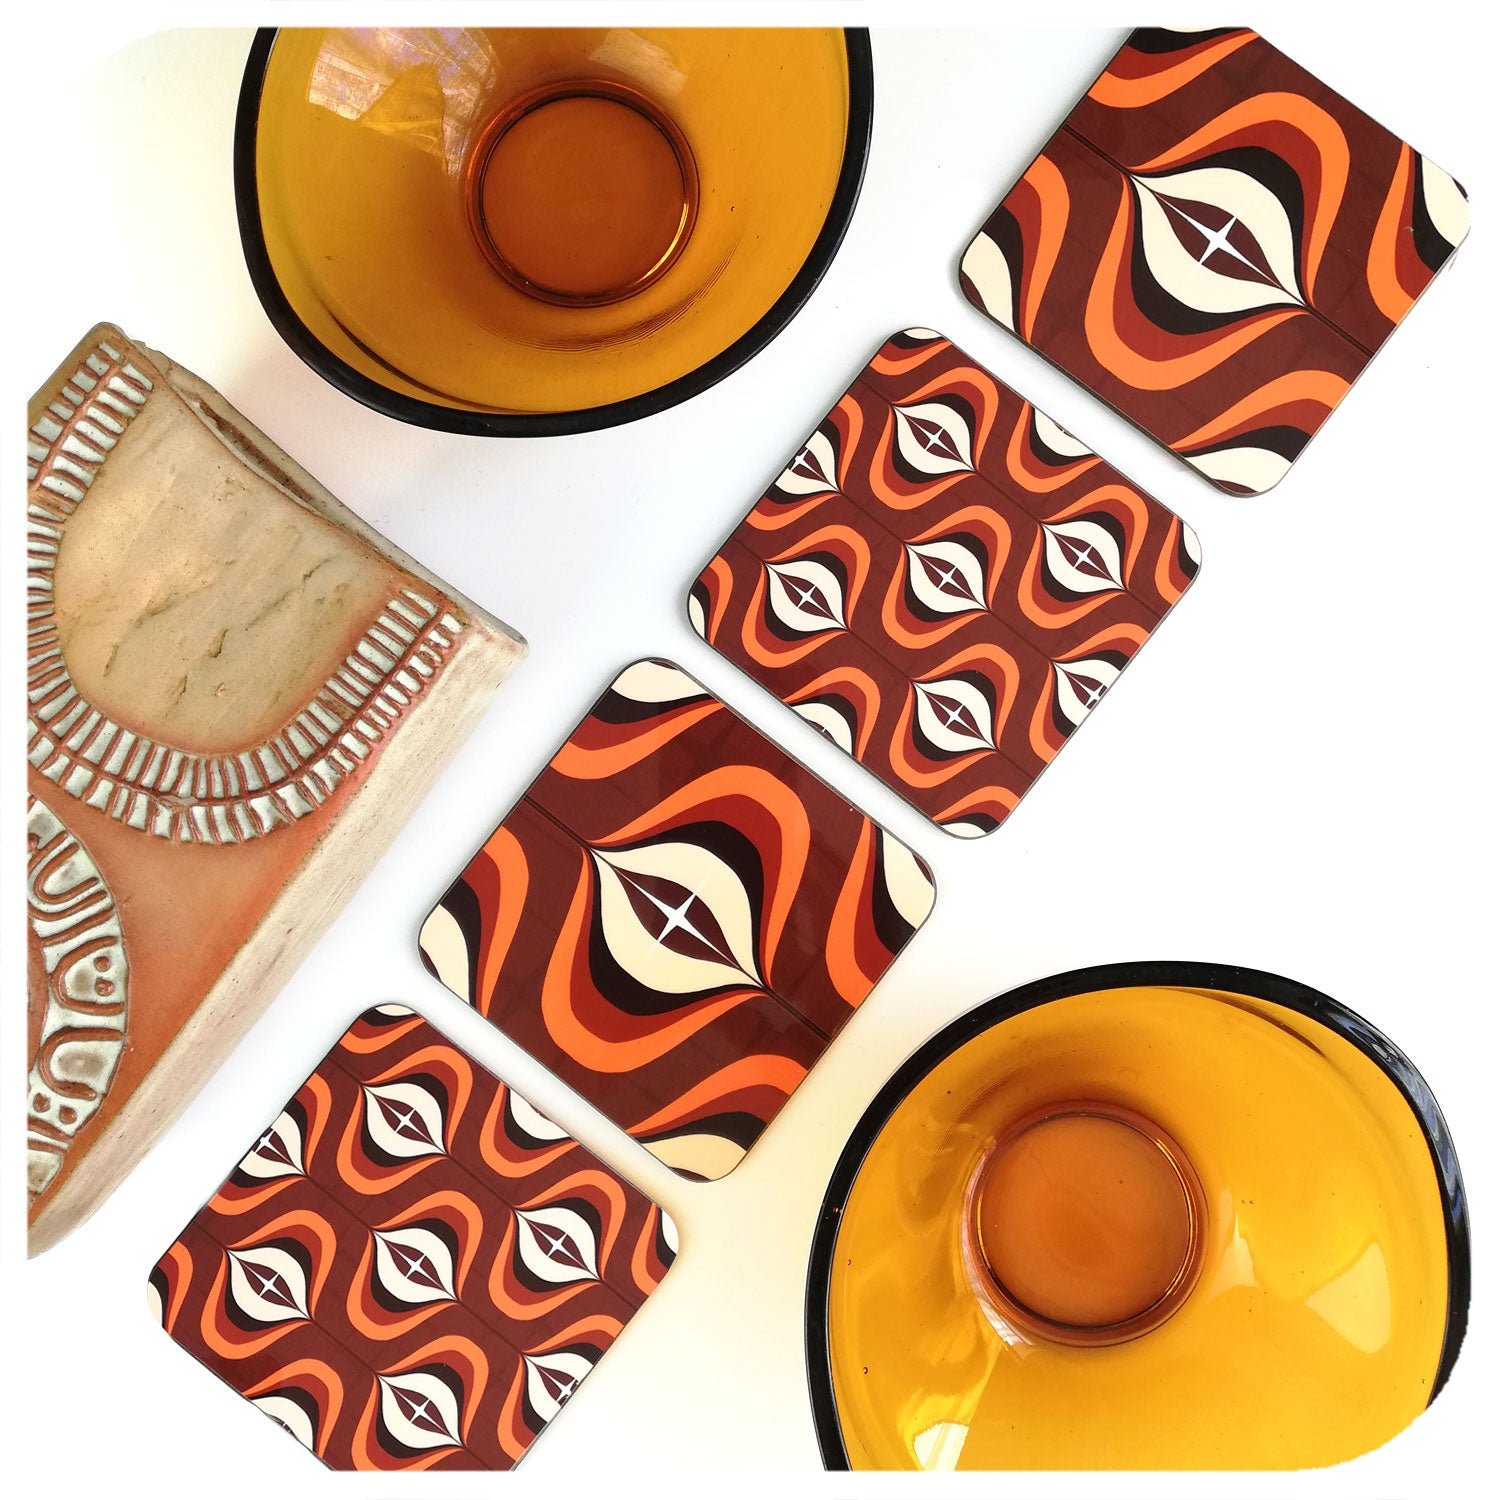 70s Op Art coasters in Brown and Orange, set of 4 | The Inkabilly Emporium